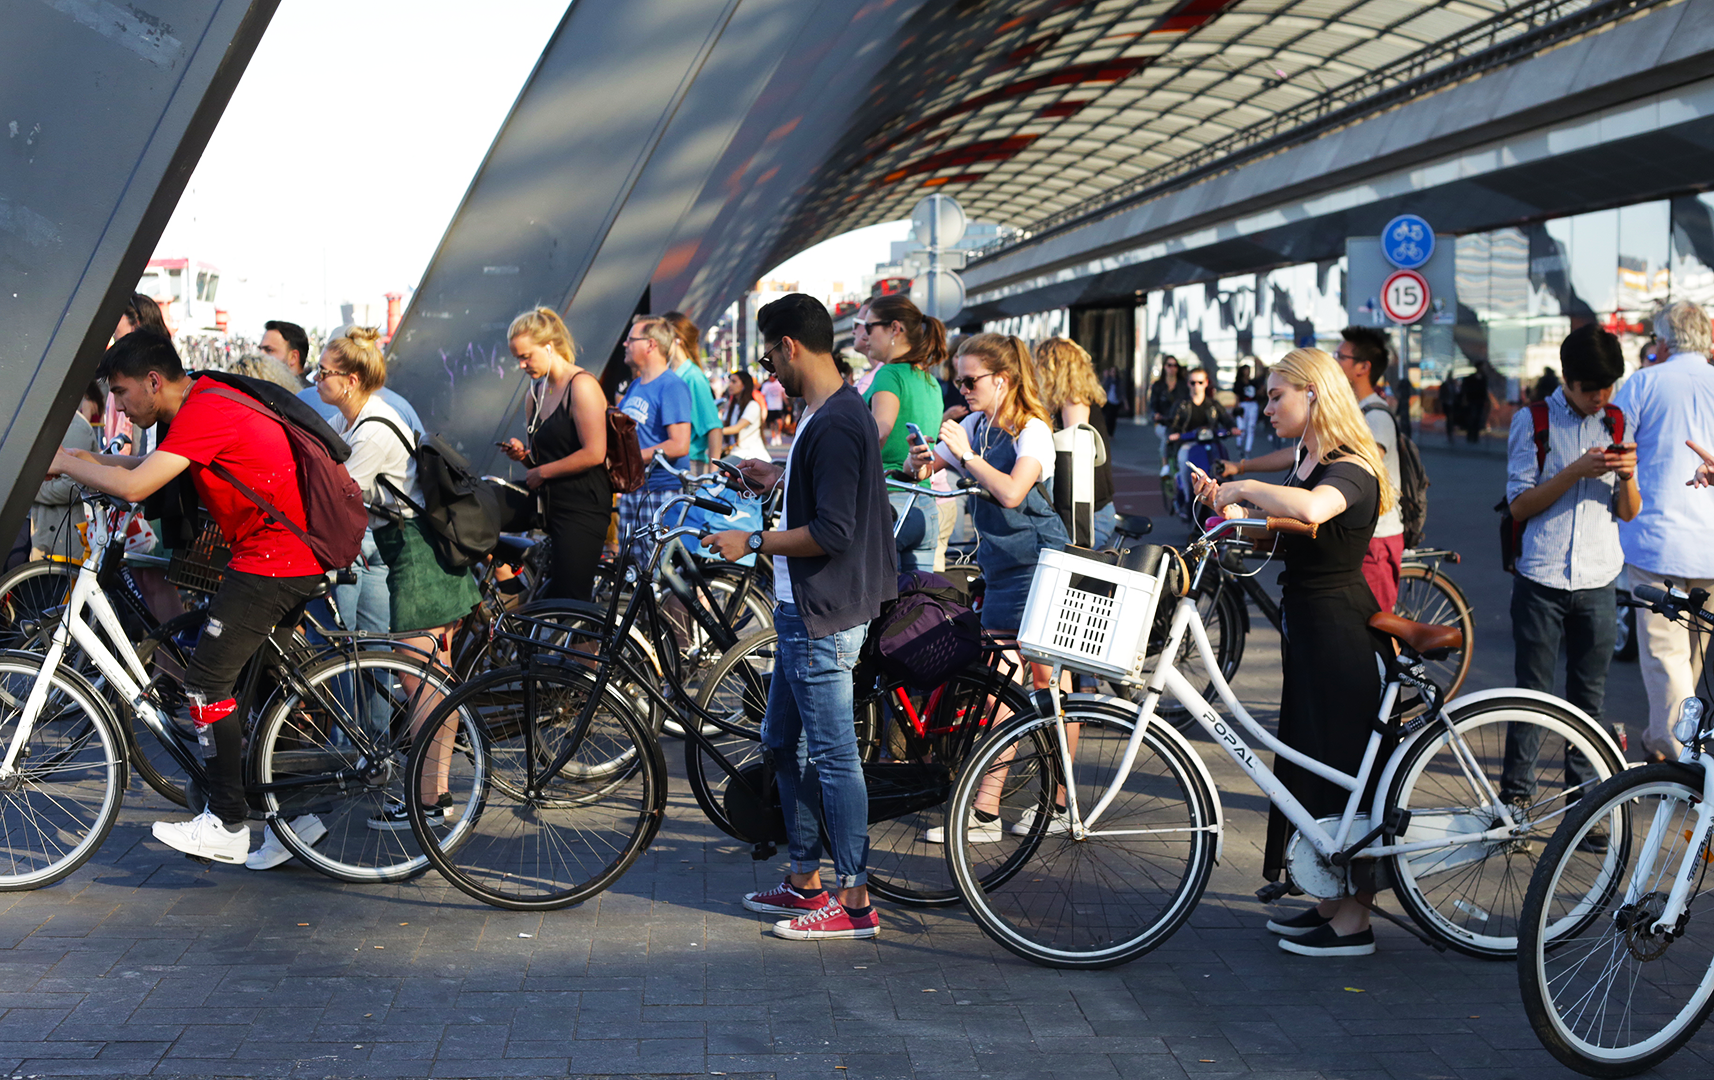 A crowd of people wait patiently with their bikes at the Buiksloterweg Ferry Terminal next to Central Station